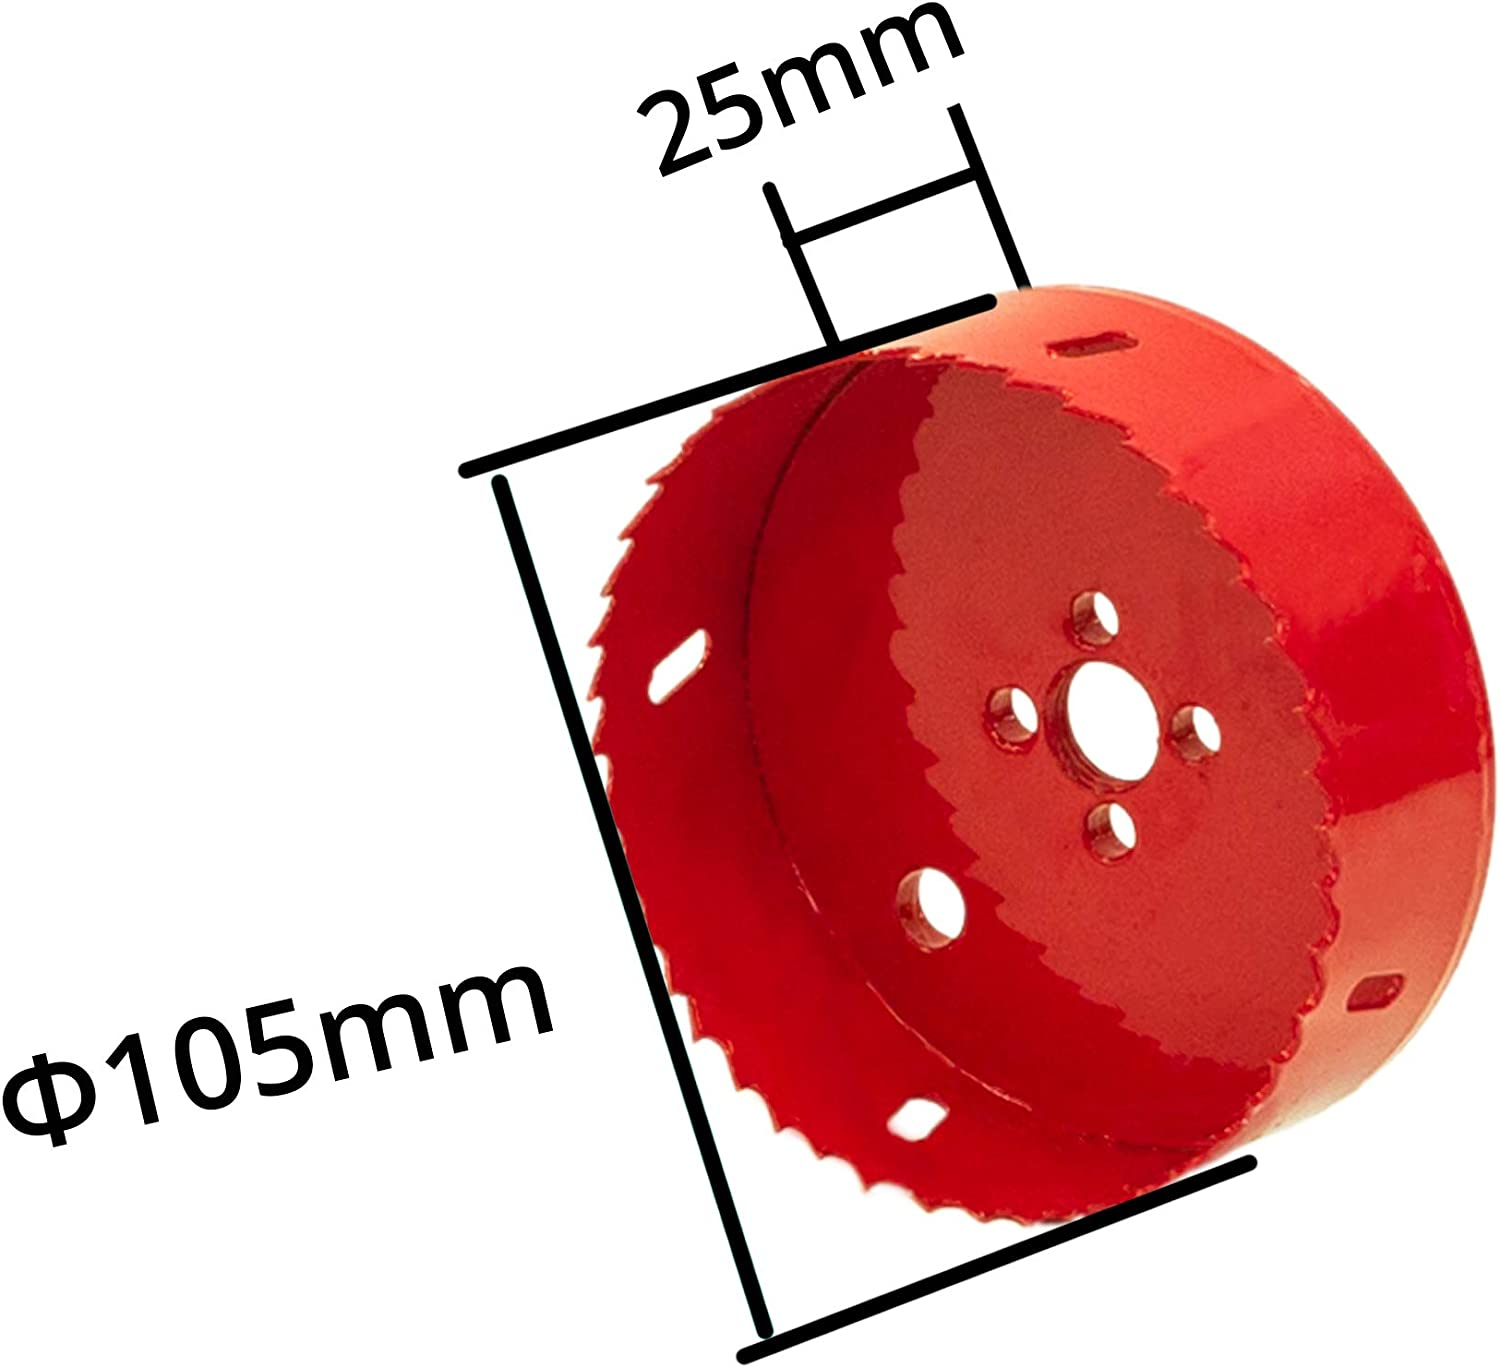 Suitable for All 3//8 Electric Drills Aluminum Elbe 100mm Hole Saw 6542 HSS Ideal for Cutting Stainless Steel Black PVC Board and Plastic Plate and Wood high Speed Steel M2